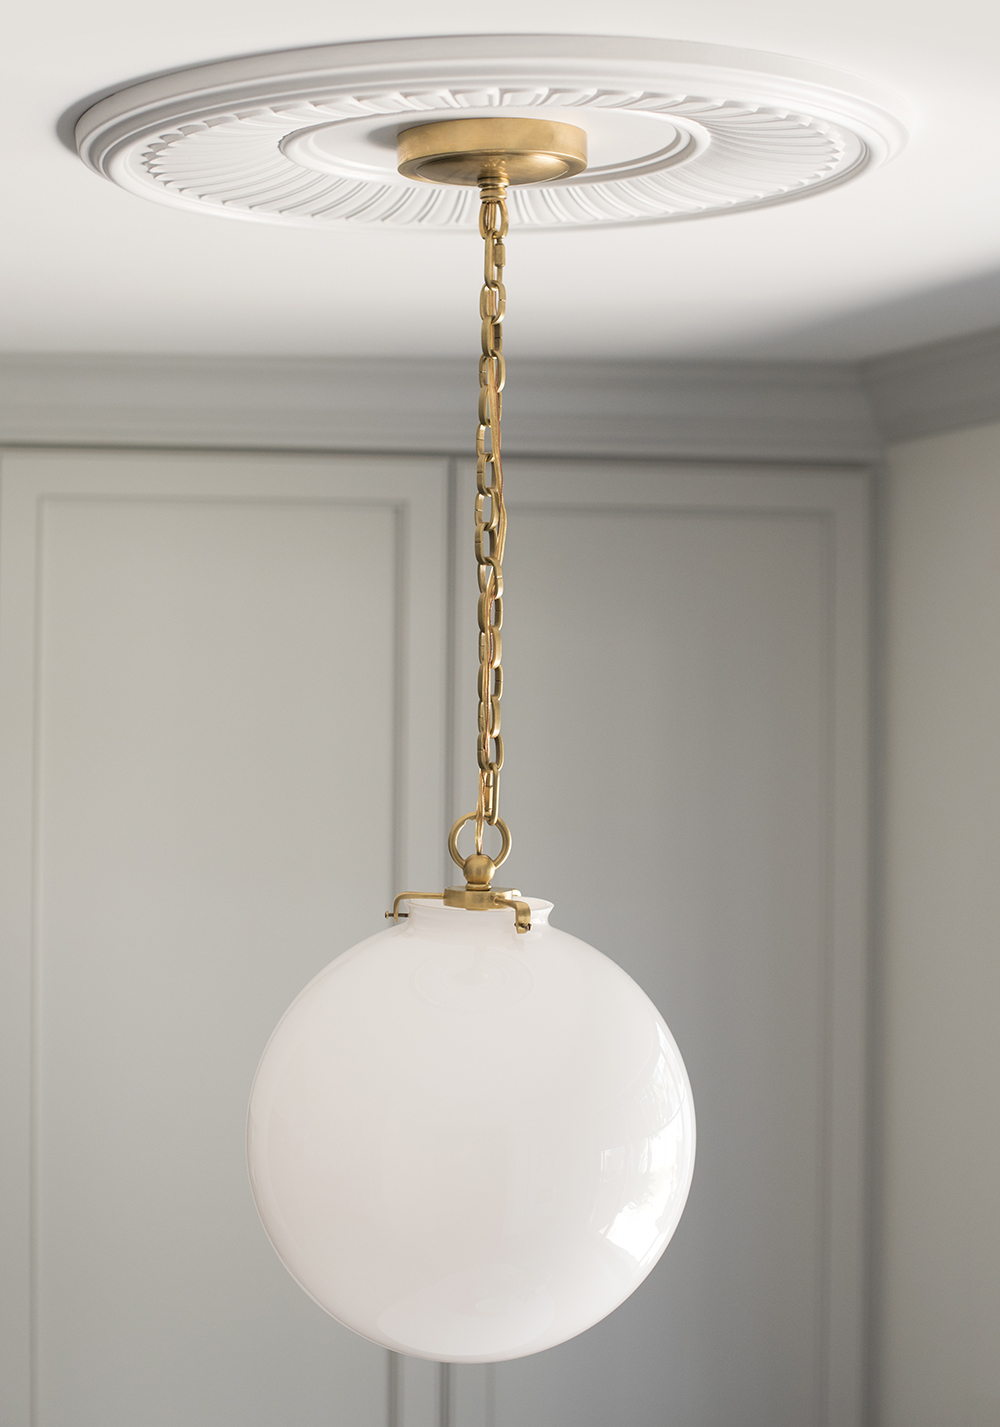 Best of Etsy : Light Fixtures - roomfortuesday.com